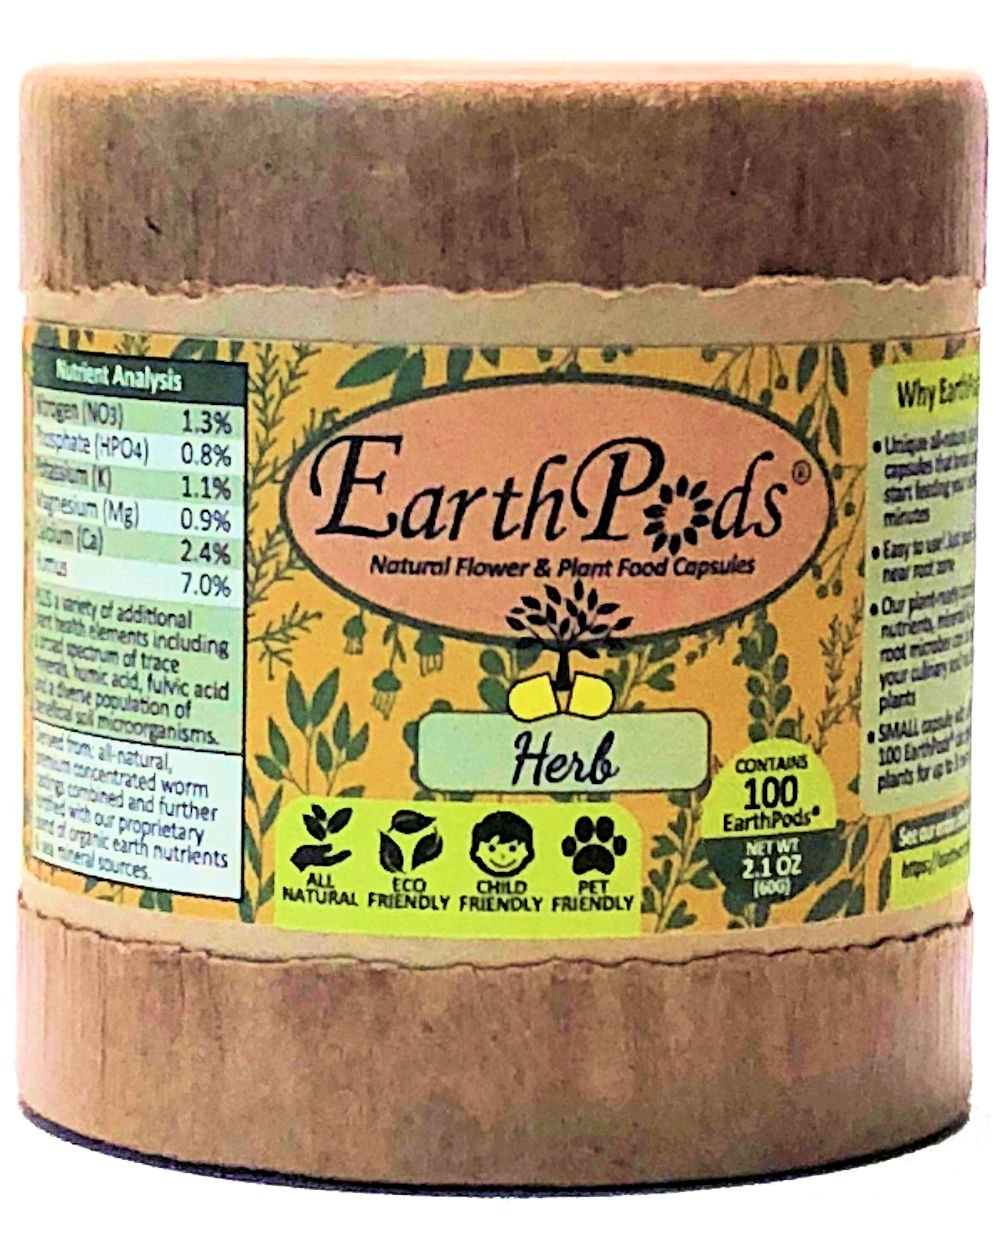 EarthPods HERB + VEGETABLE Bio Organic Fertilizer Capsules (100 Spikes, NO UREA, Feeds 10 Plants for 1 Year, Ecofriendly Plant Food for Culinary Kitchen Herbs, Vegetables & Medical Houseplants) by Earthworm Technologies (Image #2)